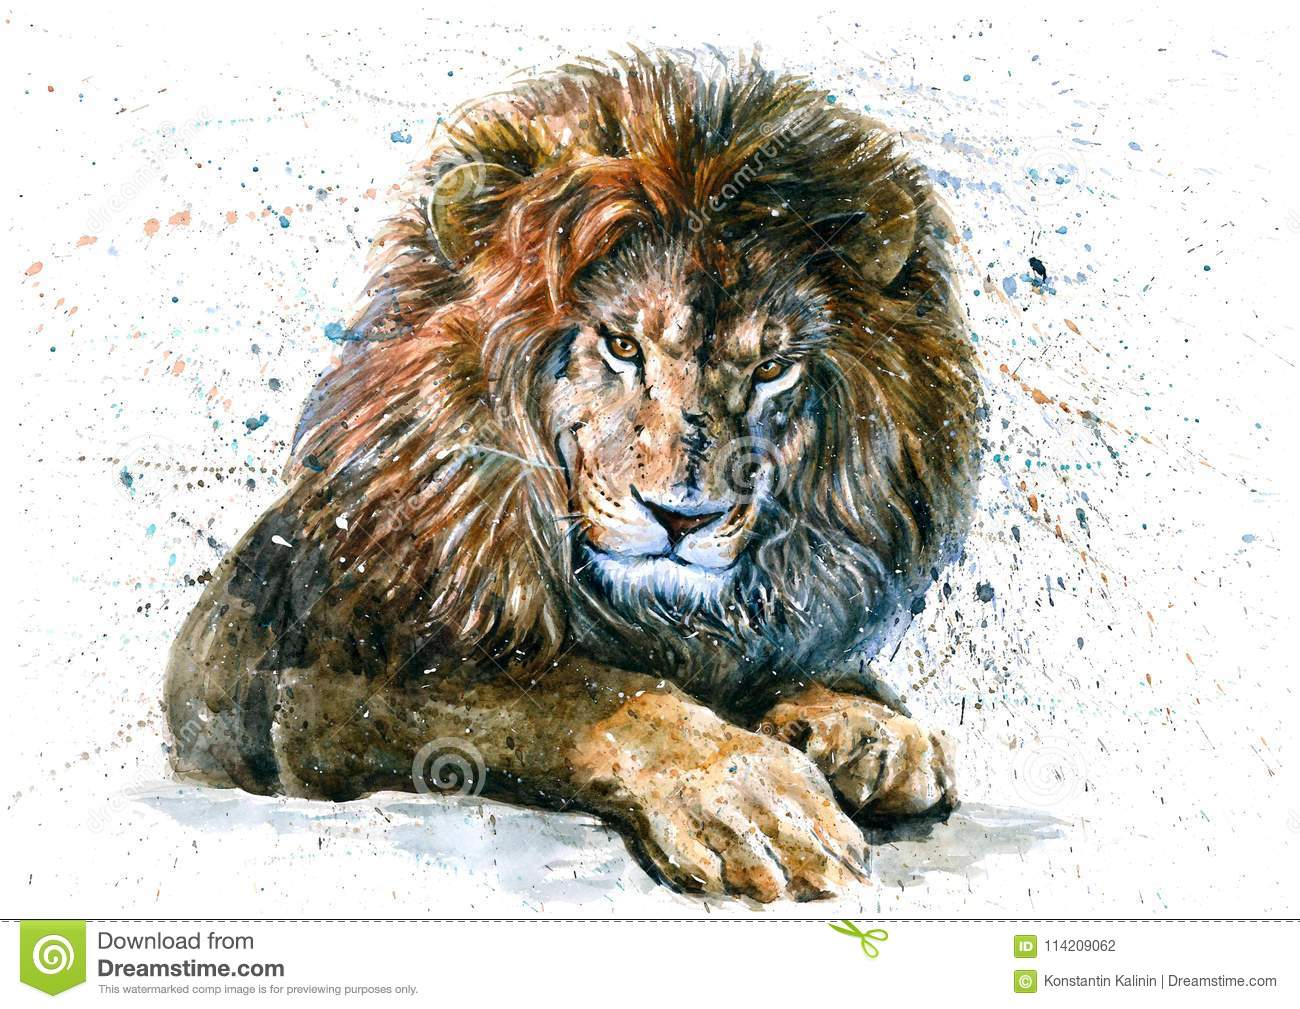 1e0b206a Lion Watercolor Predator Animals Wildlife Painting Stock ...